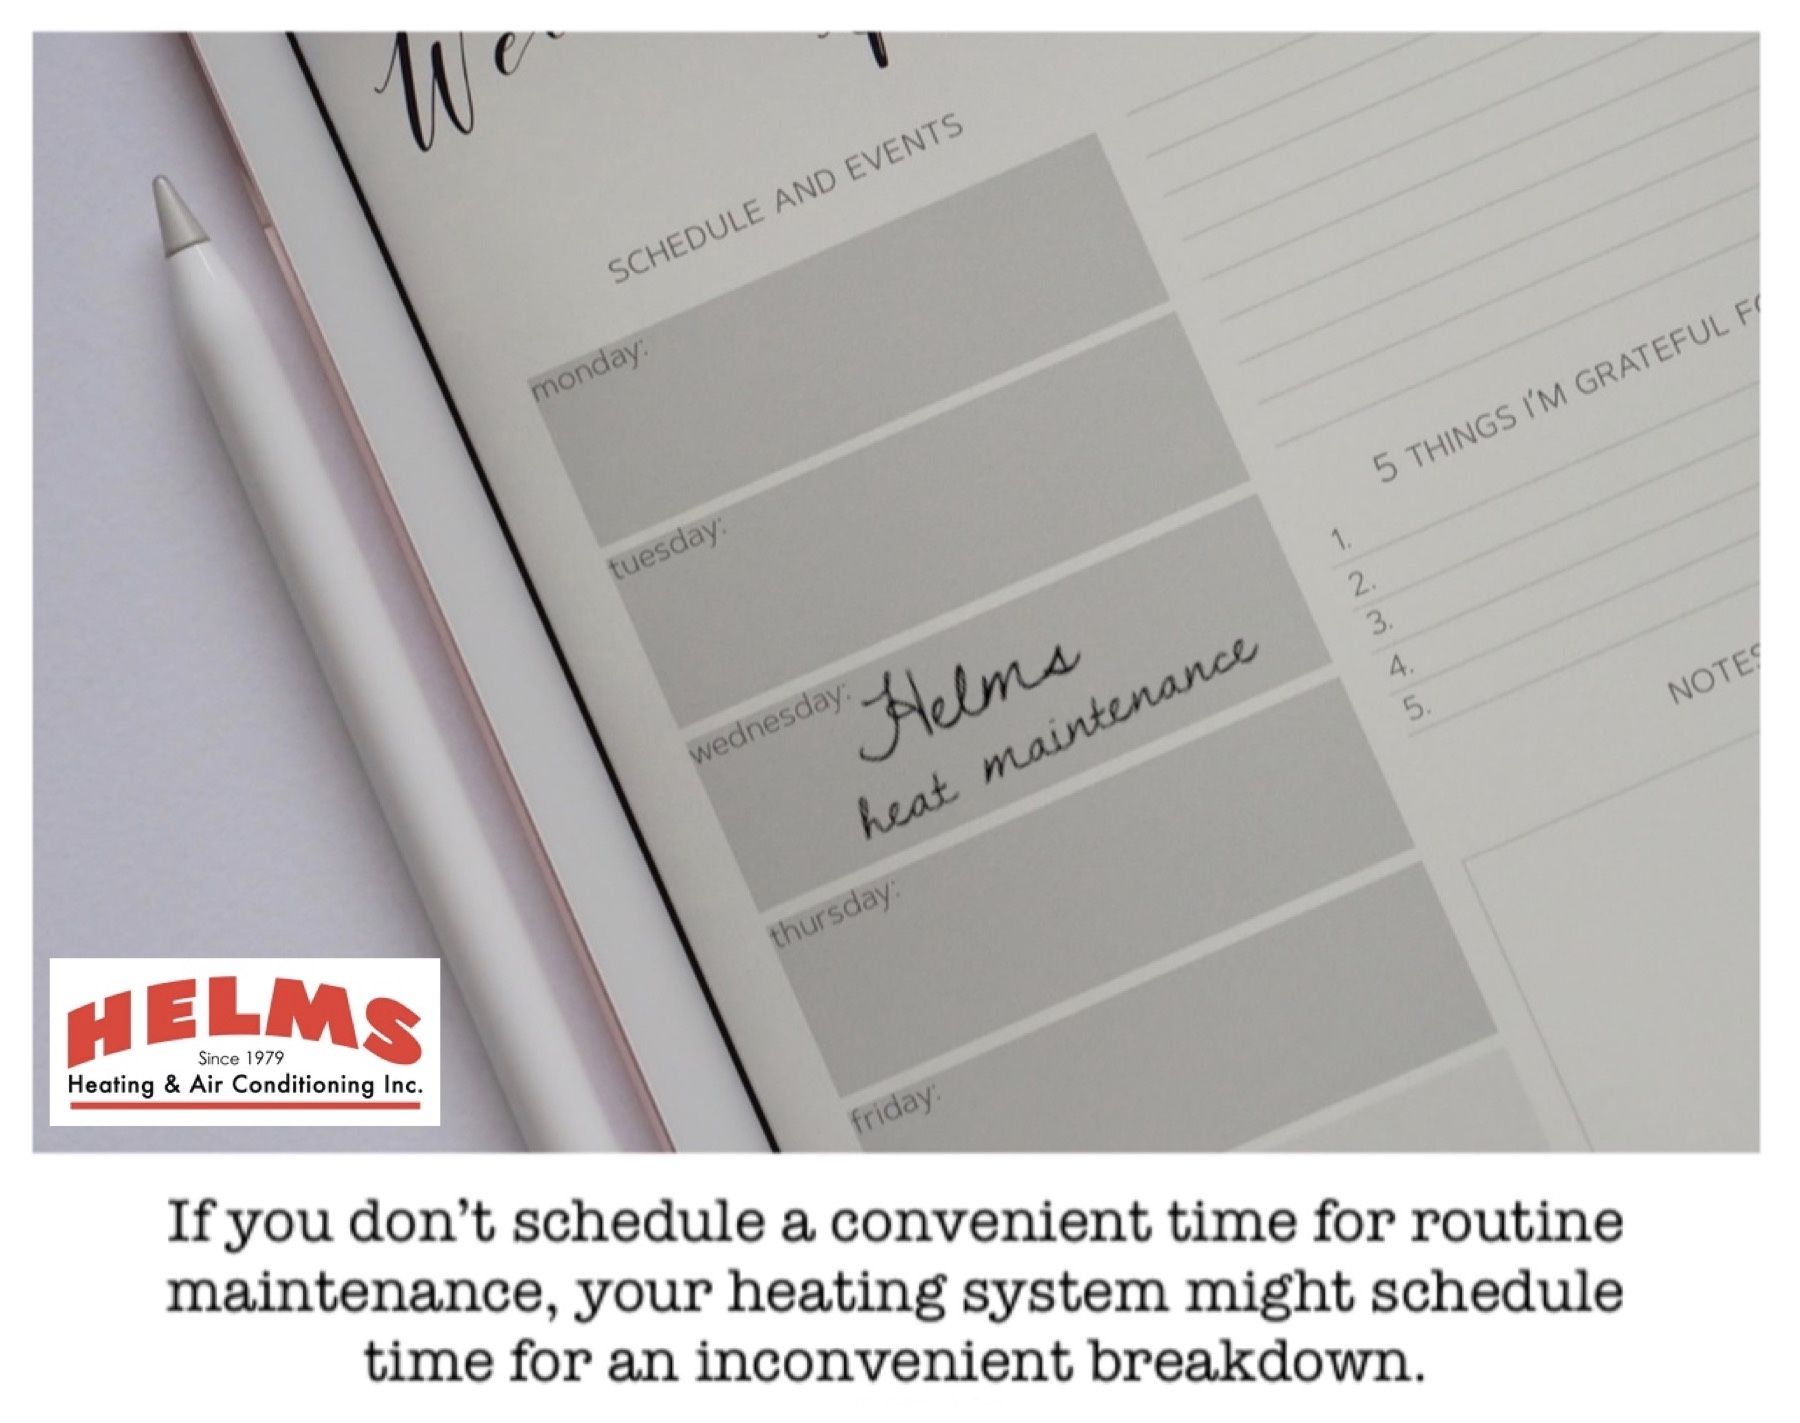 Pin by Helms Heating & Air Conditioni on Maintenance & DIY